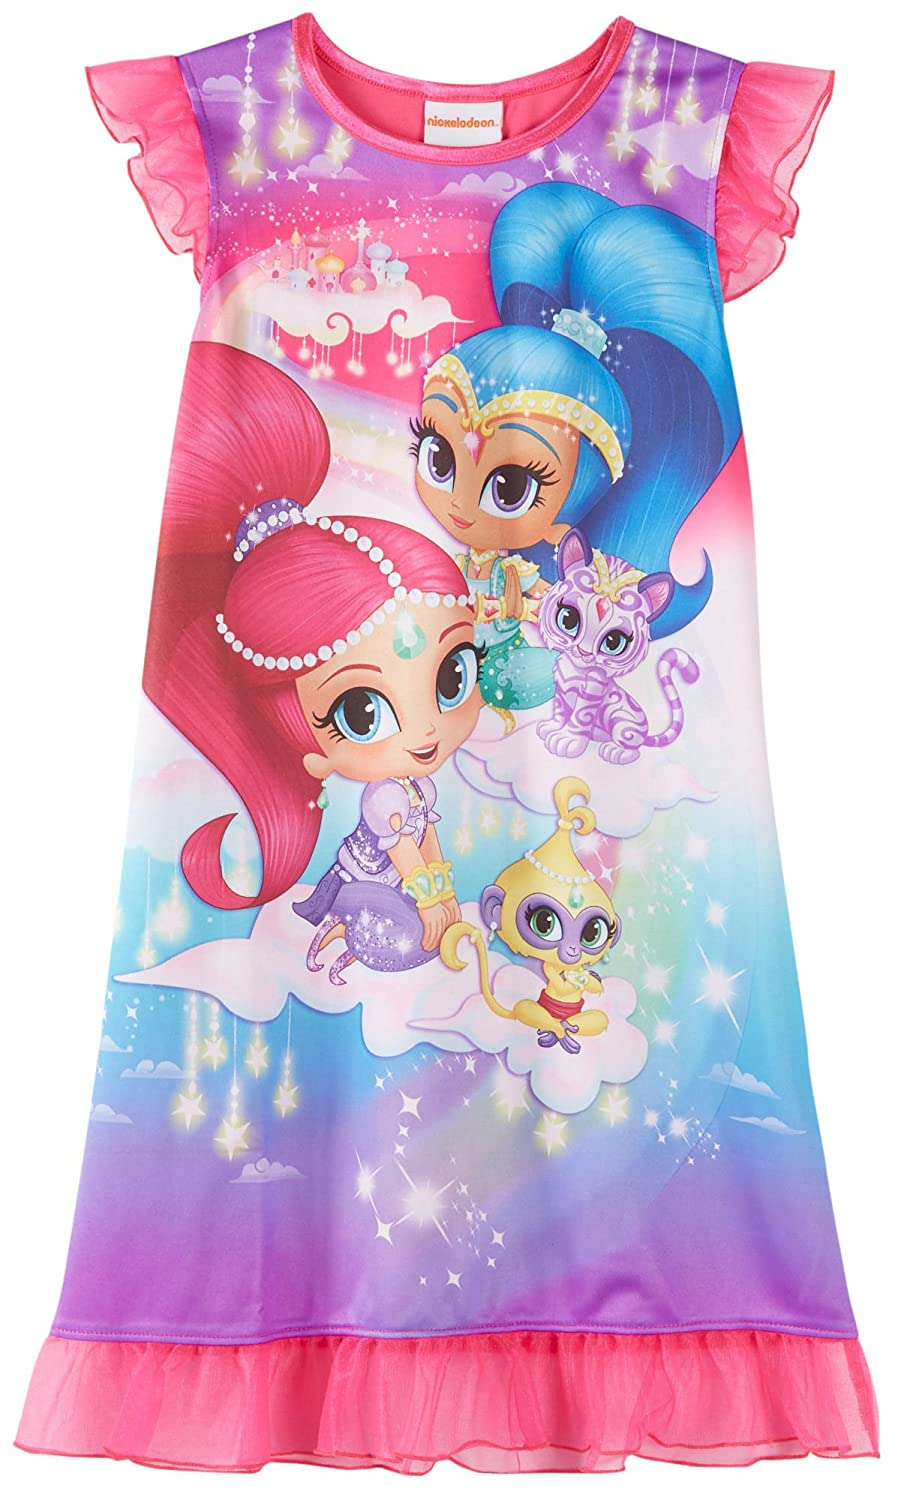 Nick Jr Shimmer and Shine and Pets Nightgown for Little Girls AME